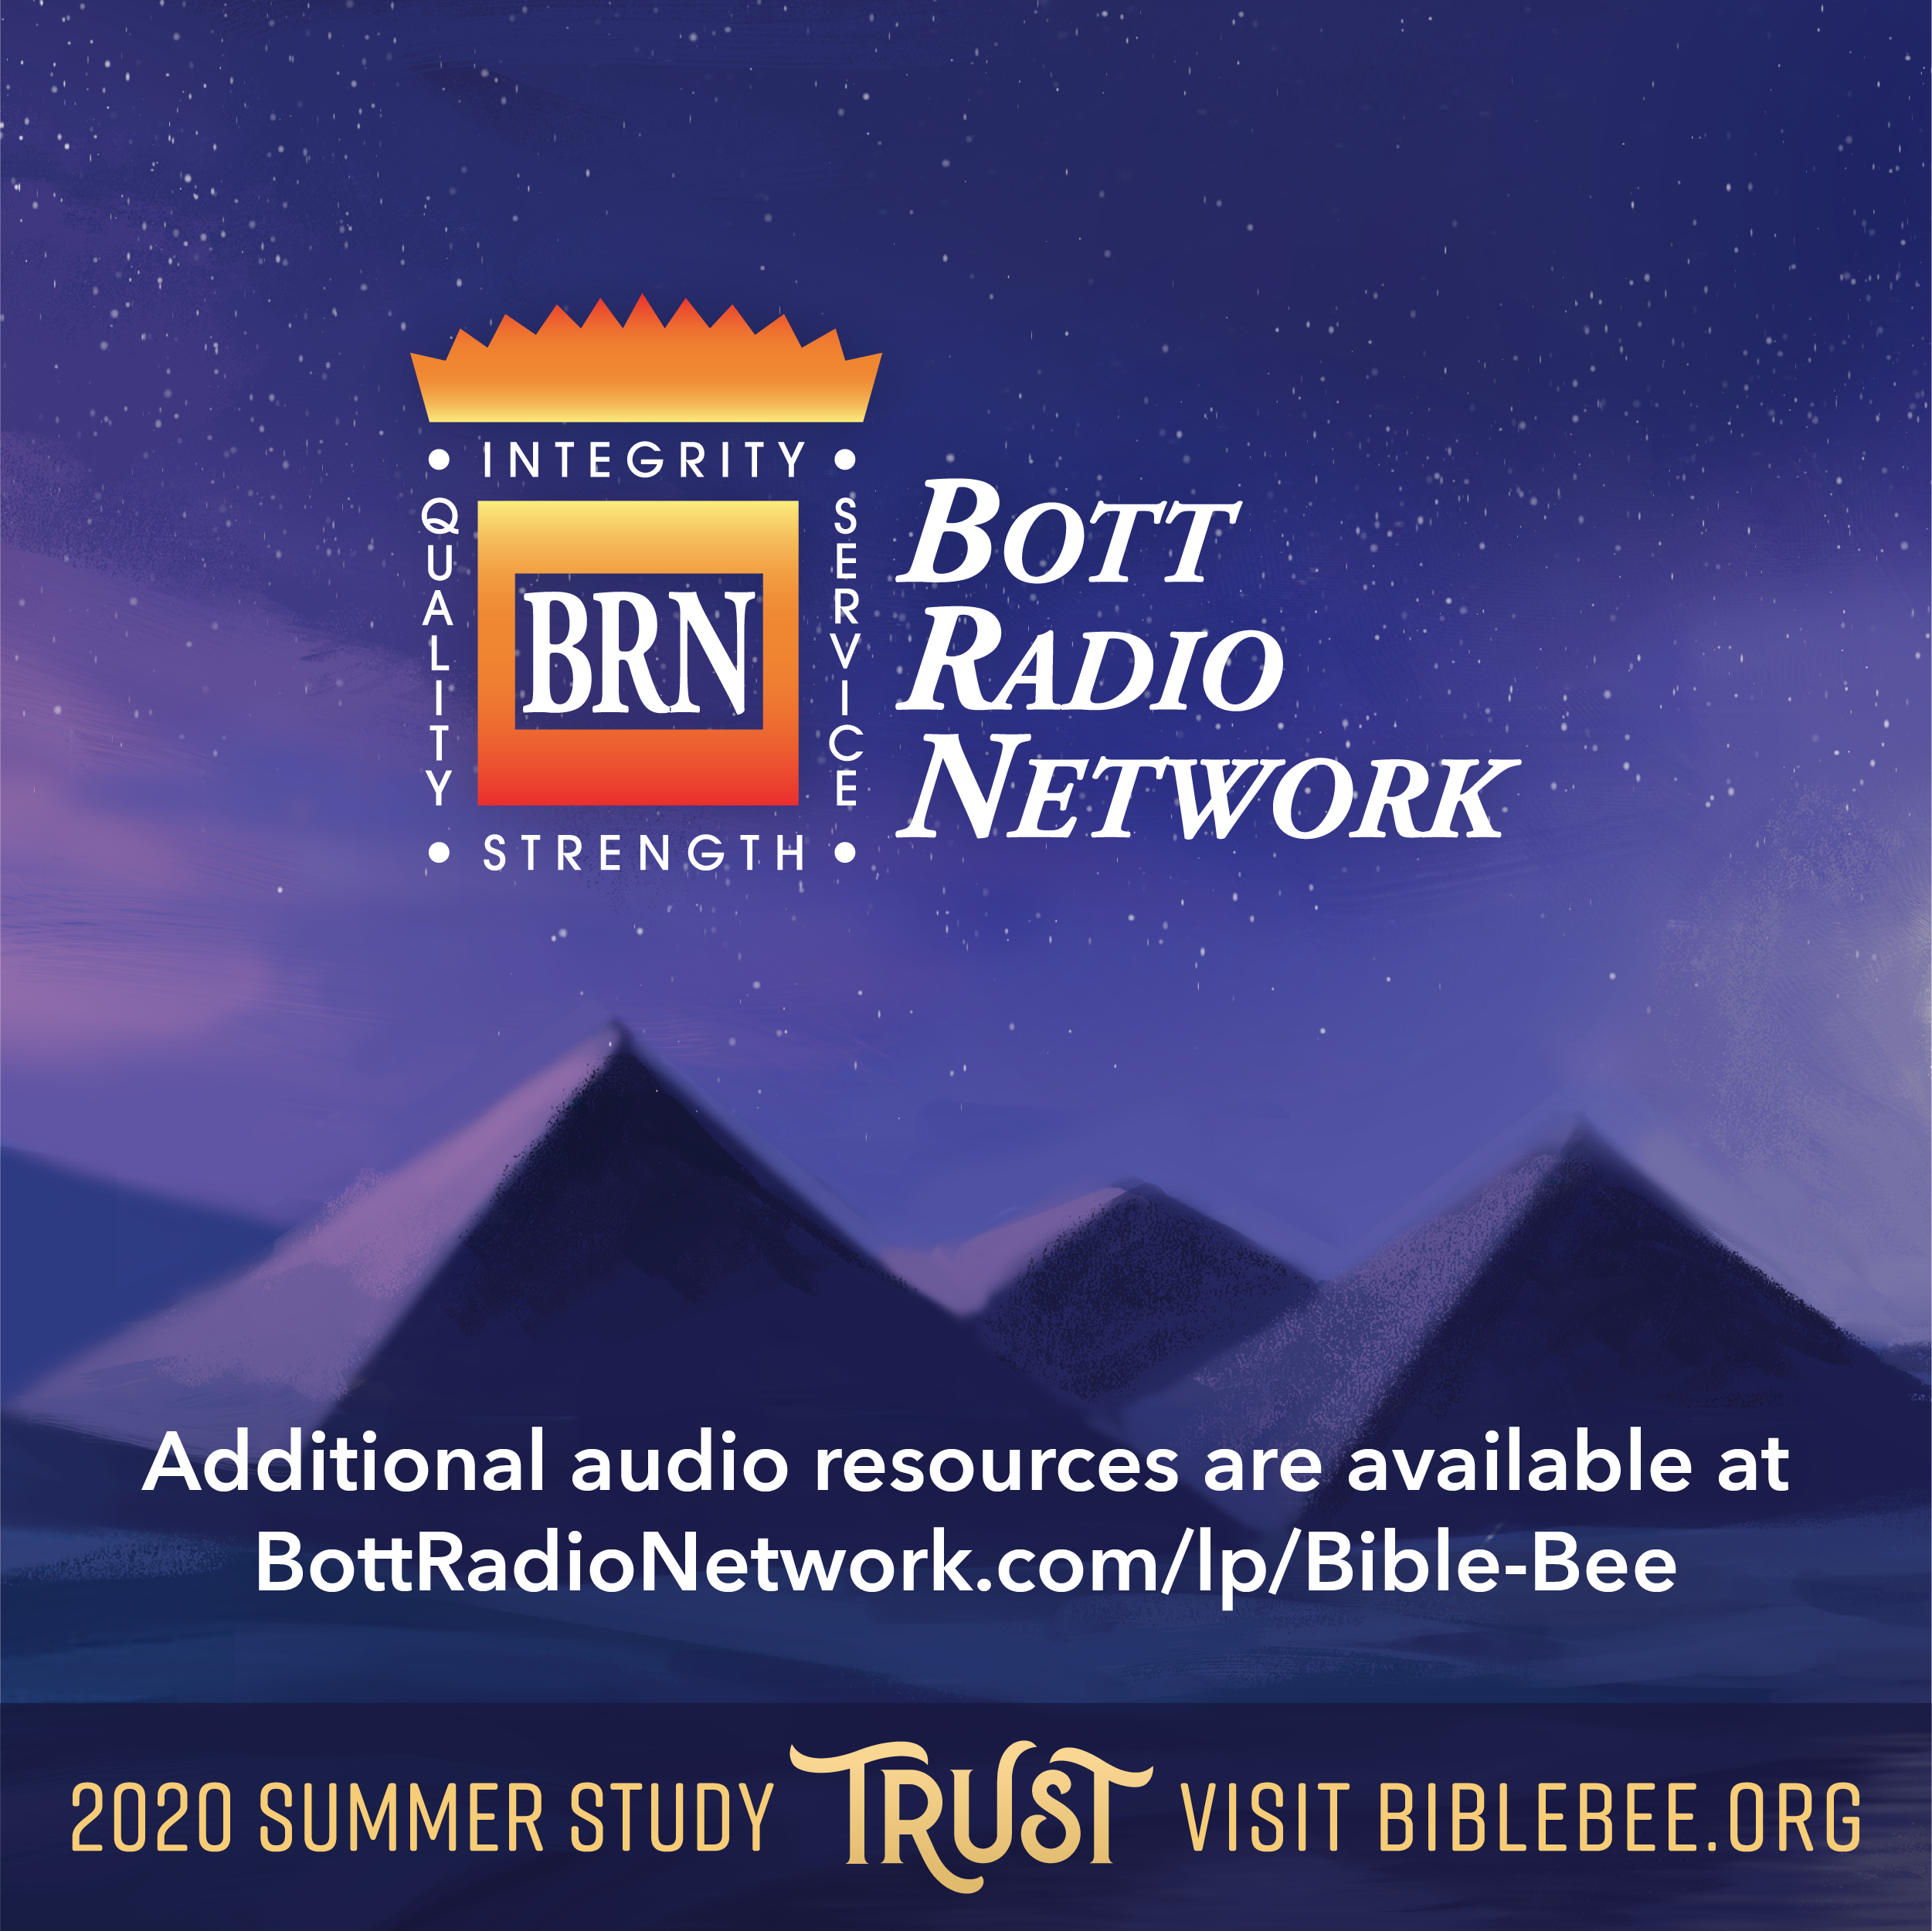 Resources from our Ministry Partner, Bott Radio